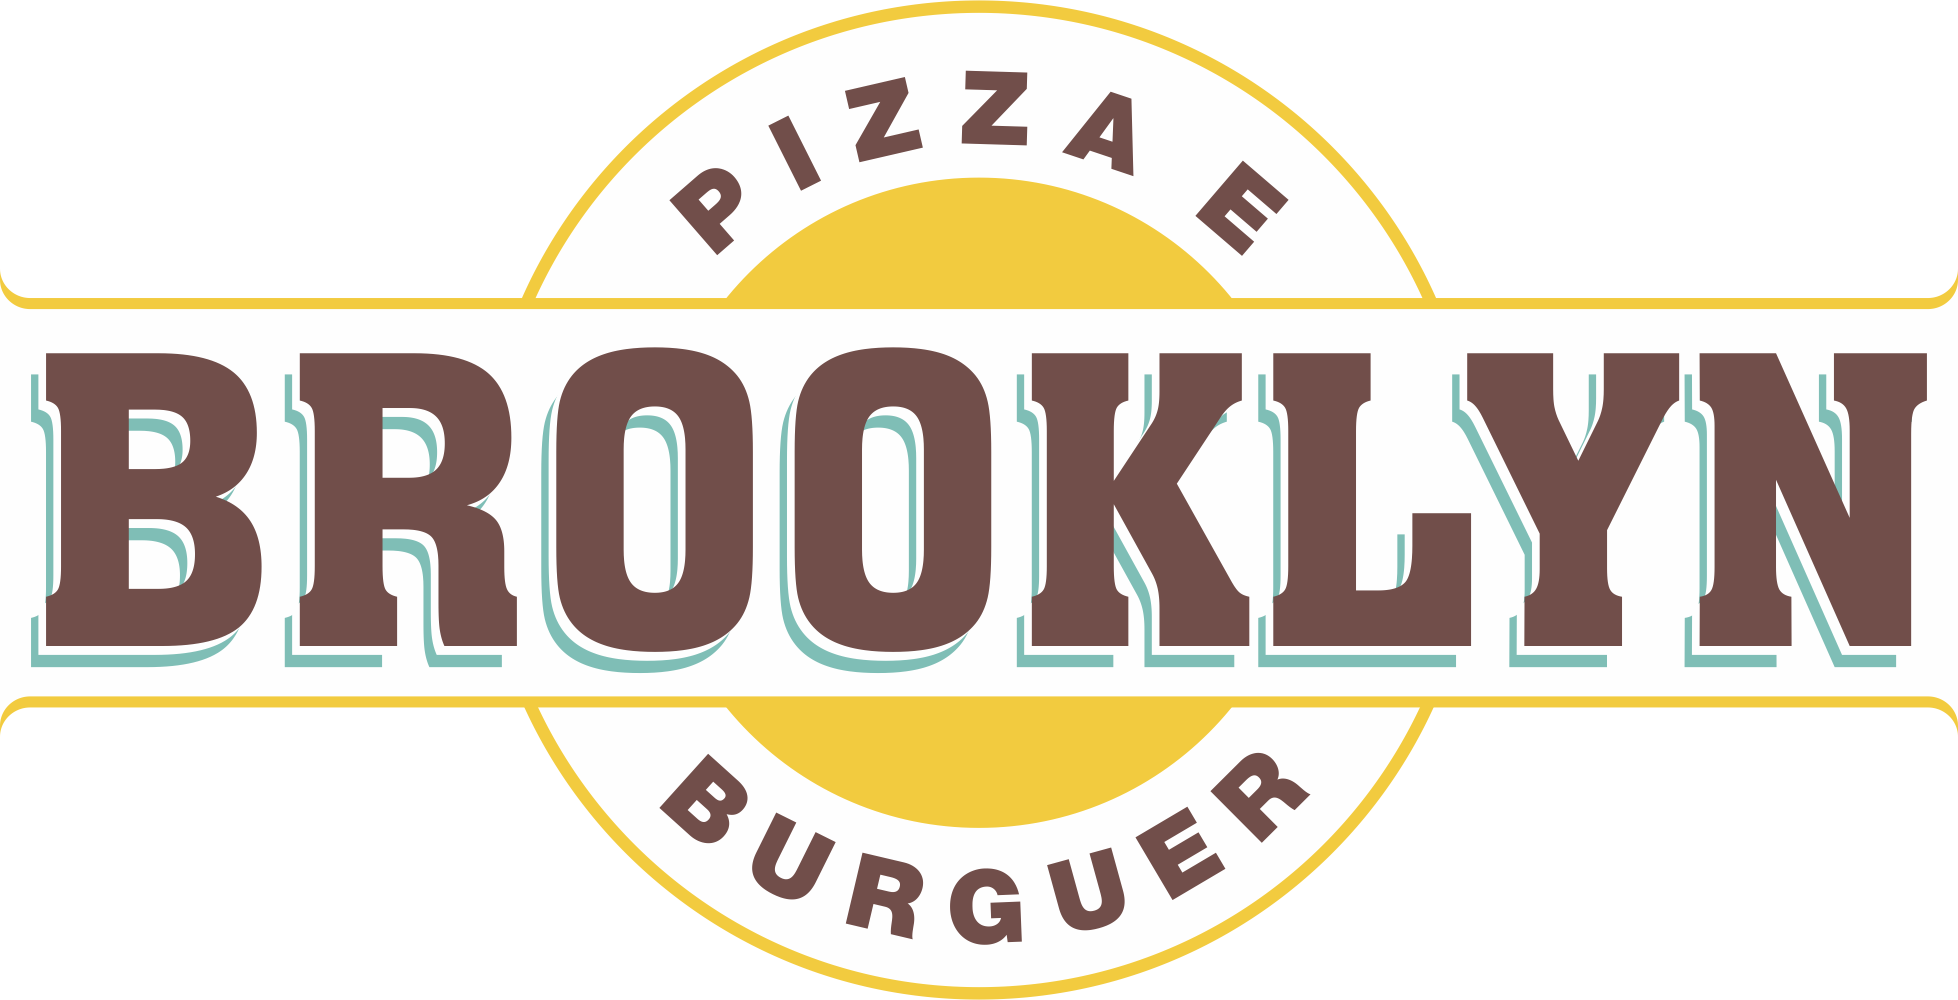 Brooklyn Pizza e Burguer